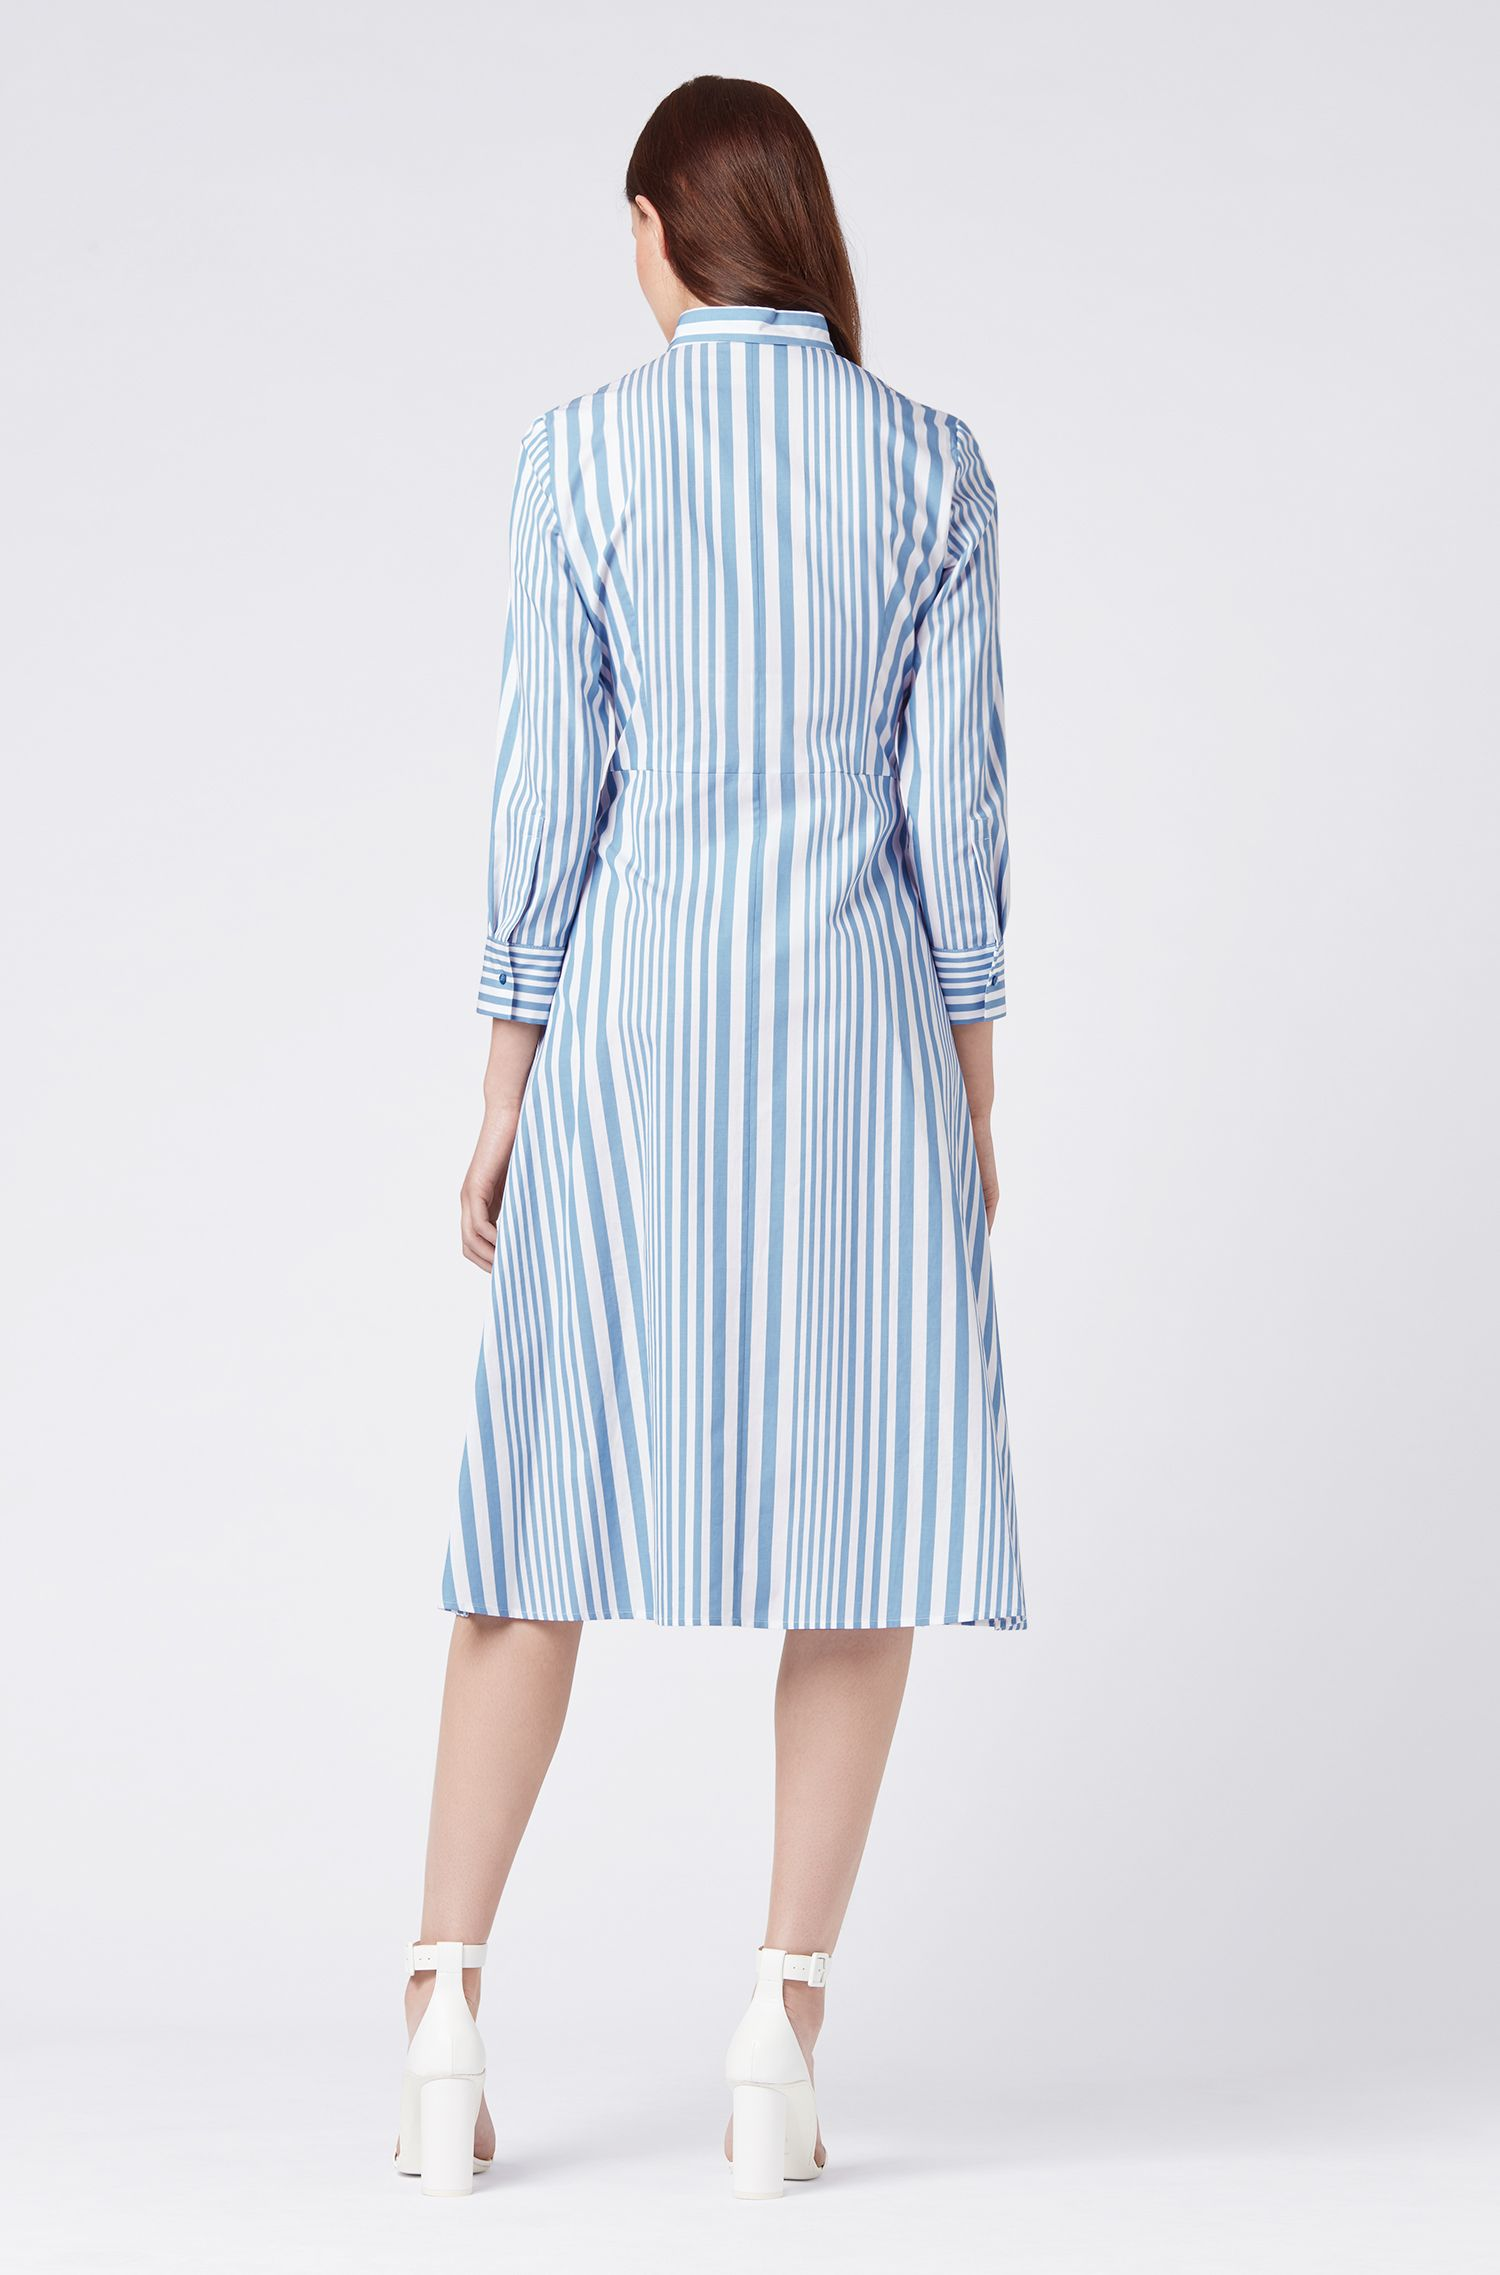 Striped shirt dress in pure cotton with tie waist, Patterned